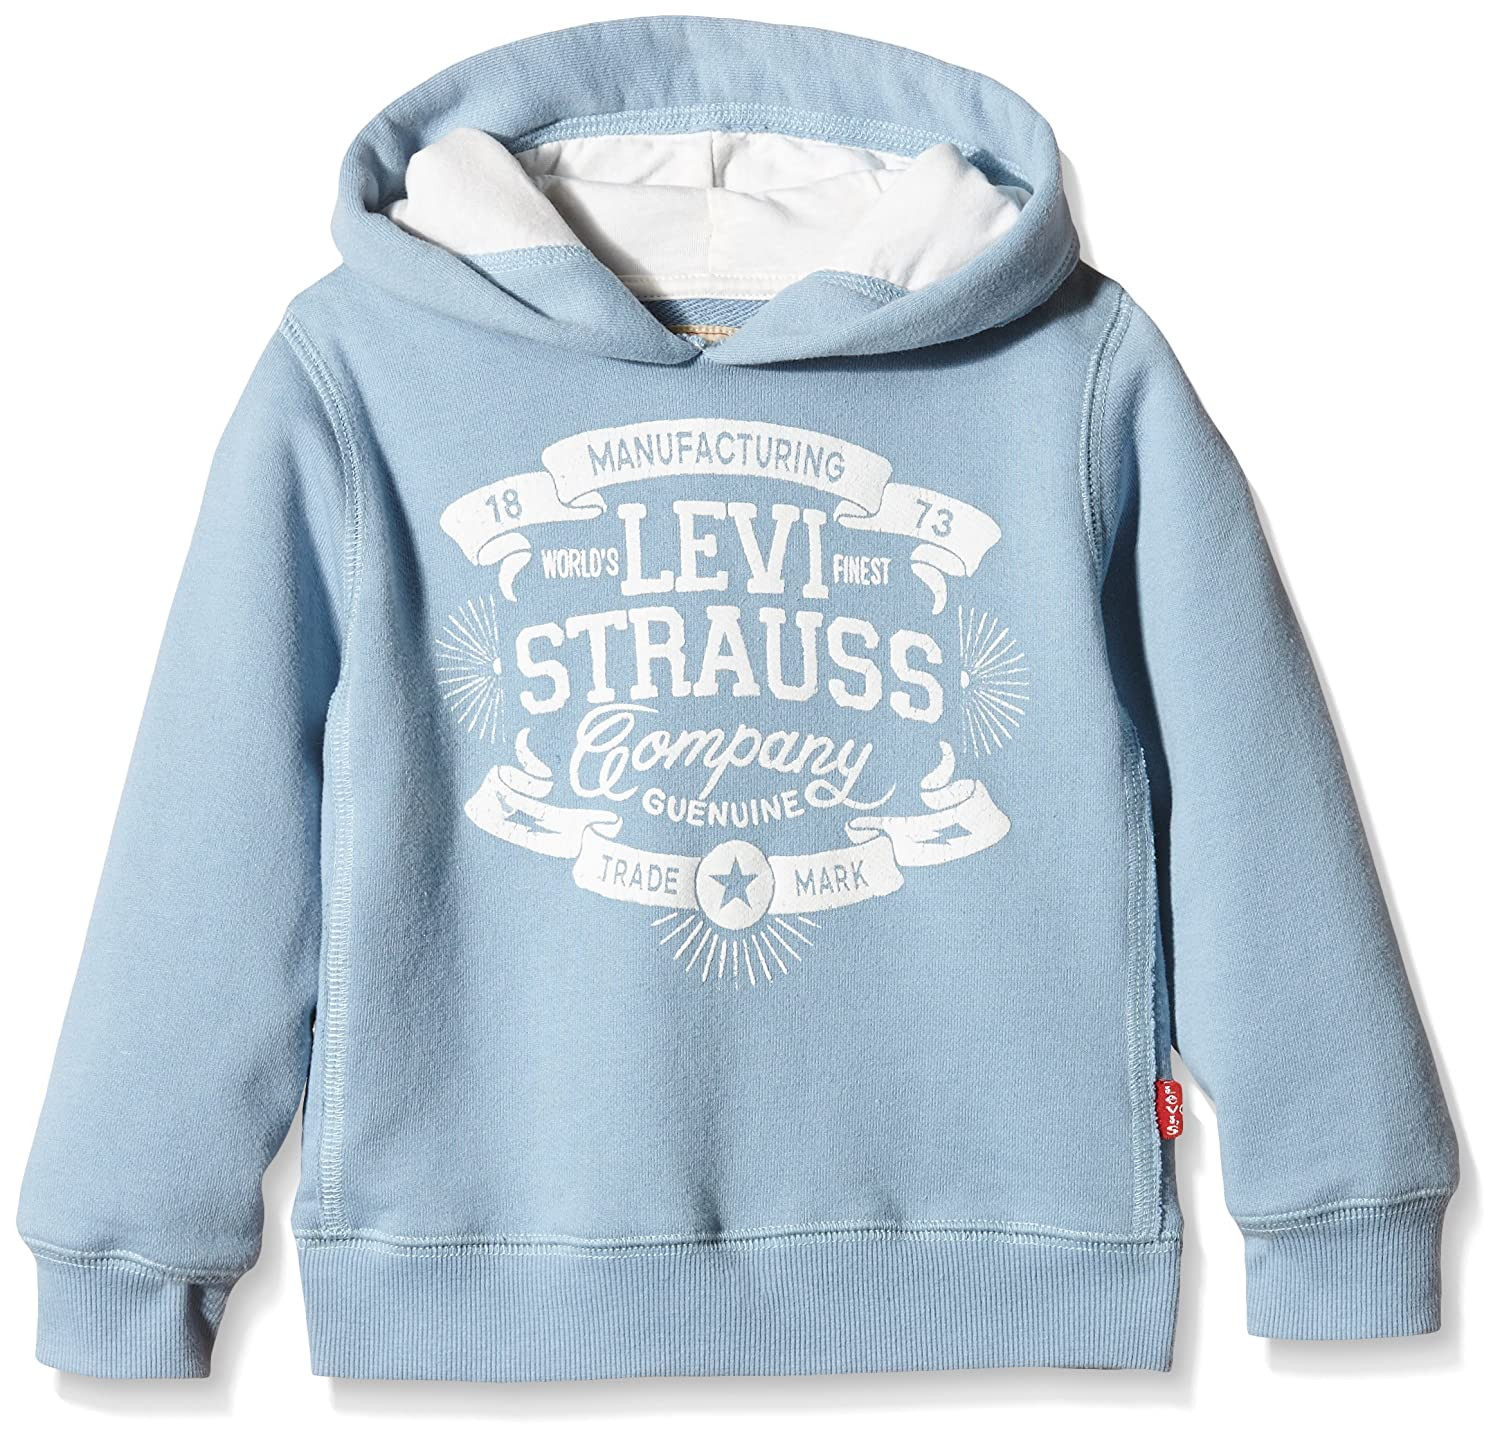 Levi's Kids Sweat Maty, Felpa con Cappuccio Bambino Levi' s Kids Sweat Maty Groupe Zannier International NH15037